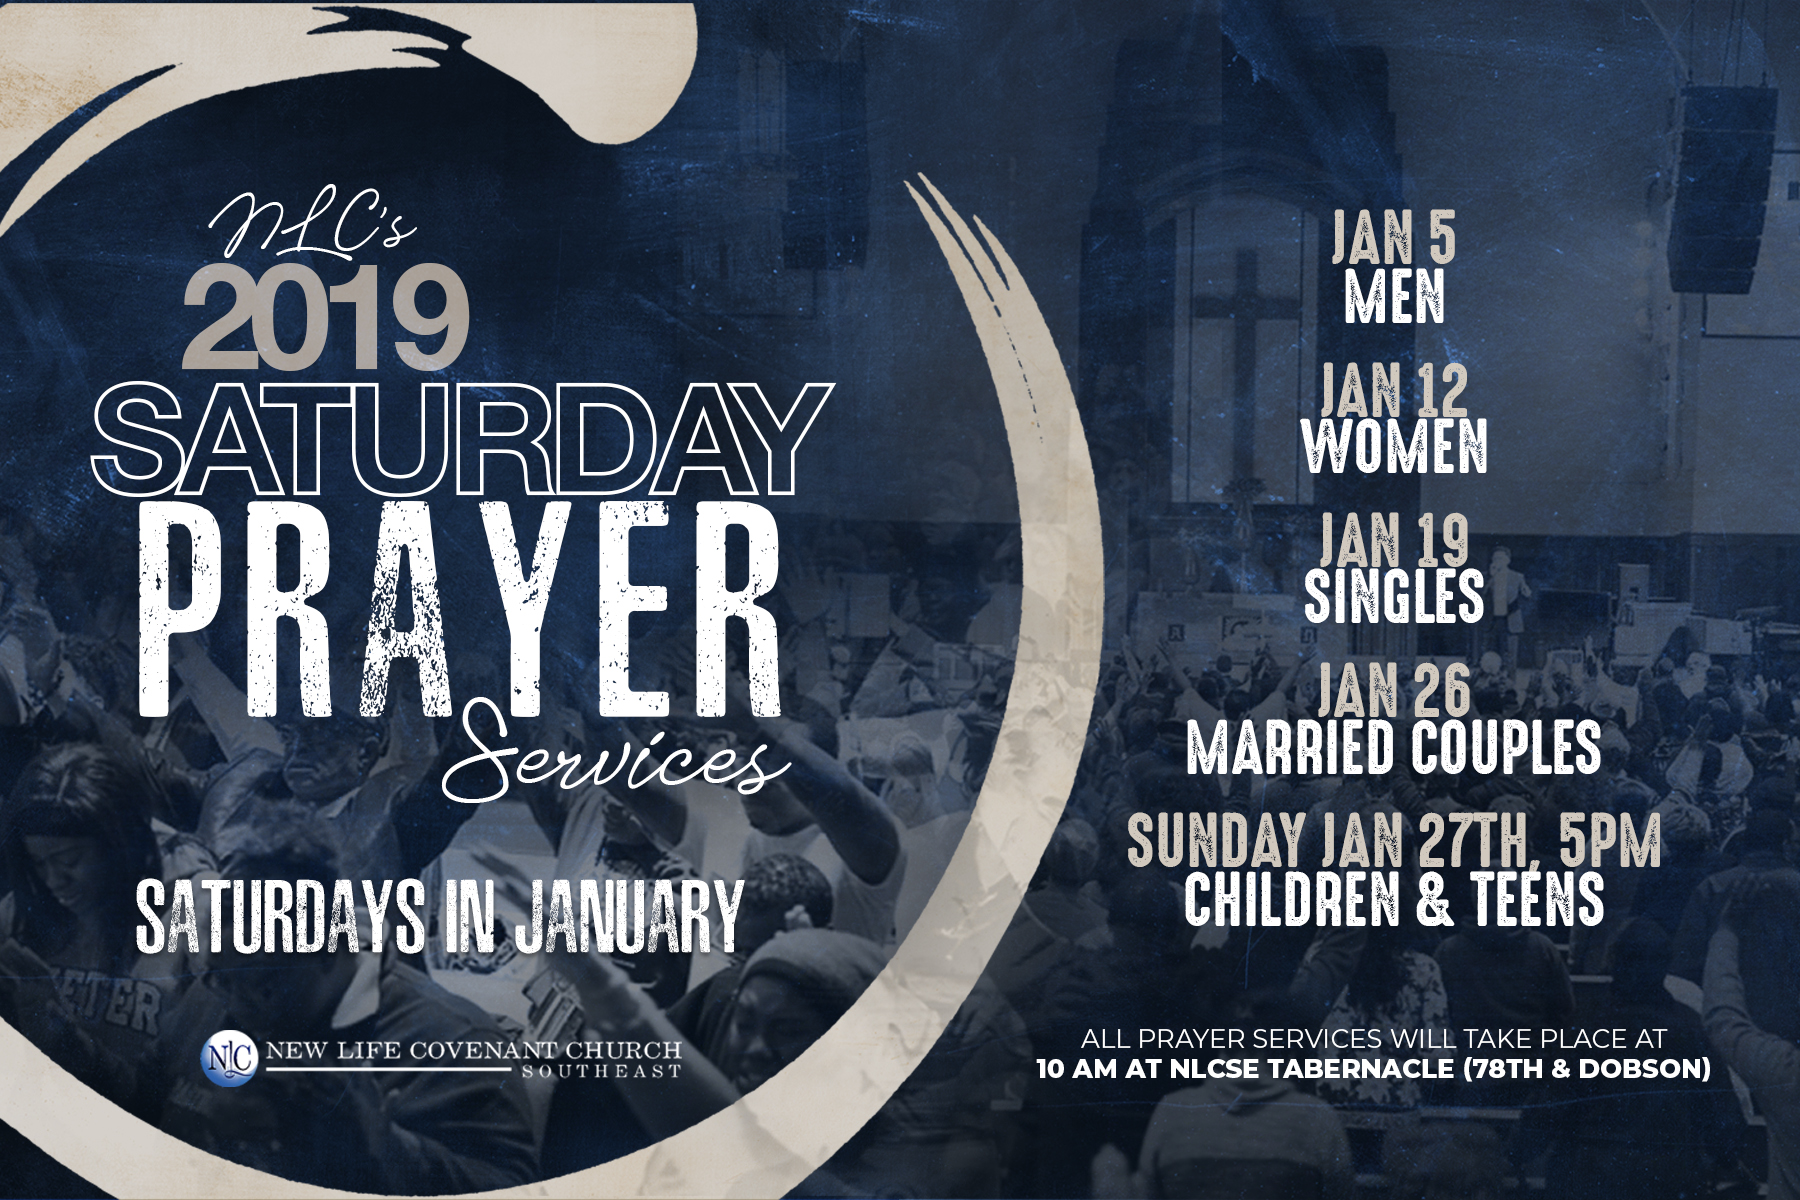 NLC's 2019 Saturday Prayer Services — New Life Covenant